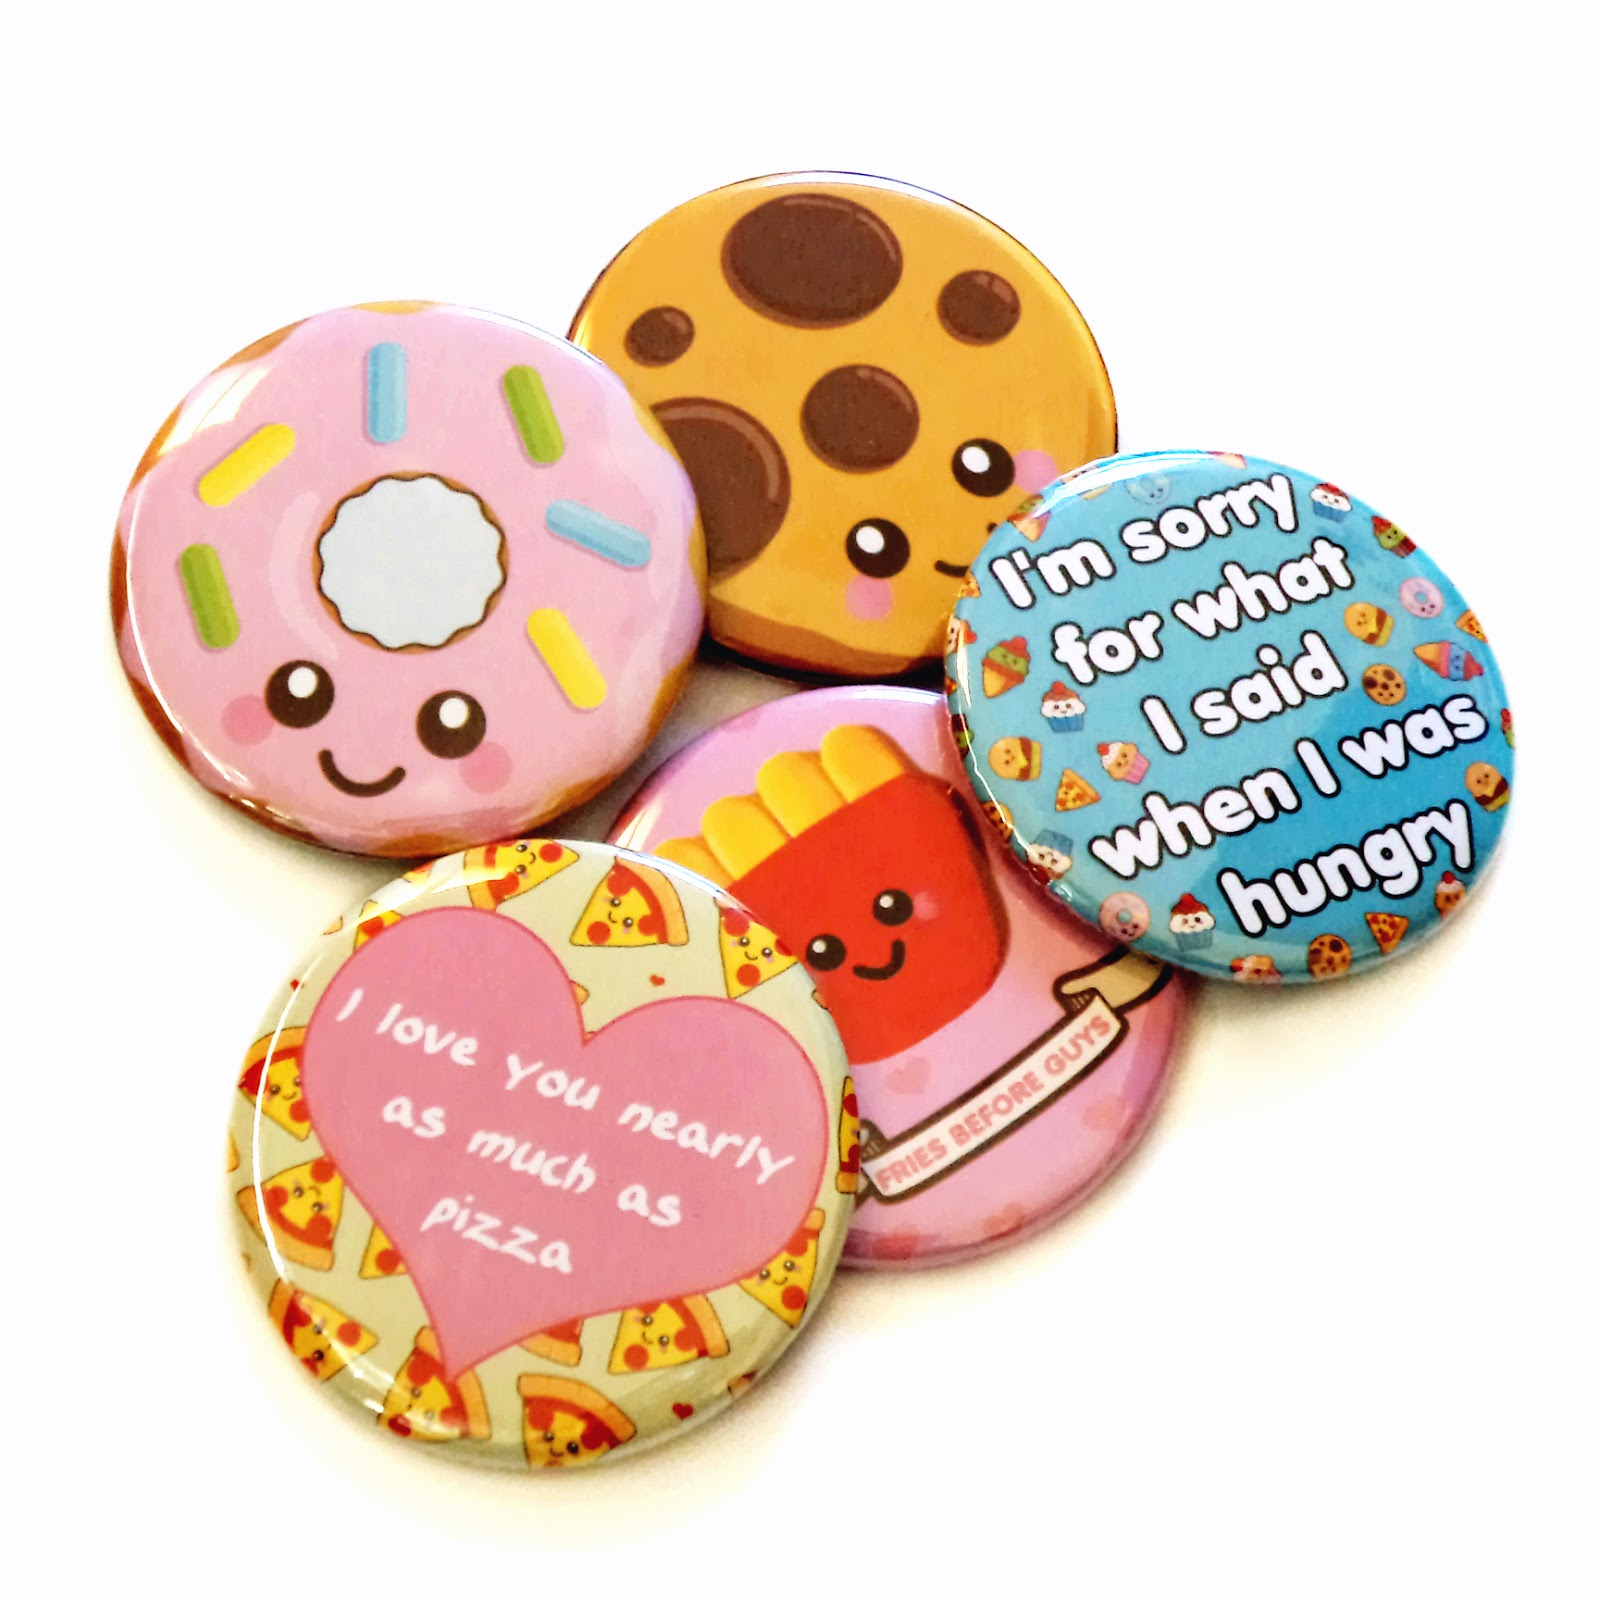 http://www.littlemissdelicious.com/ourshop/cat_943780-Fridge-Magnets.html